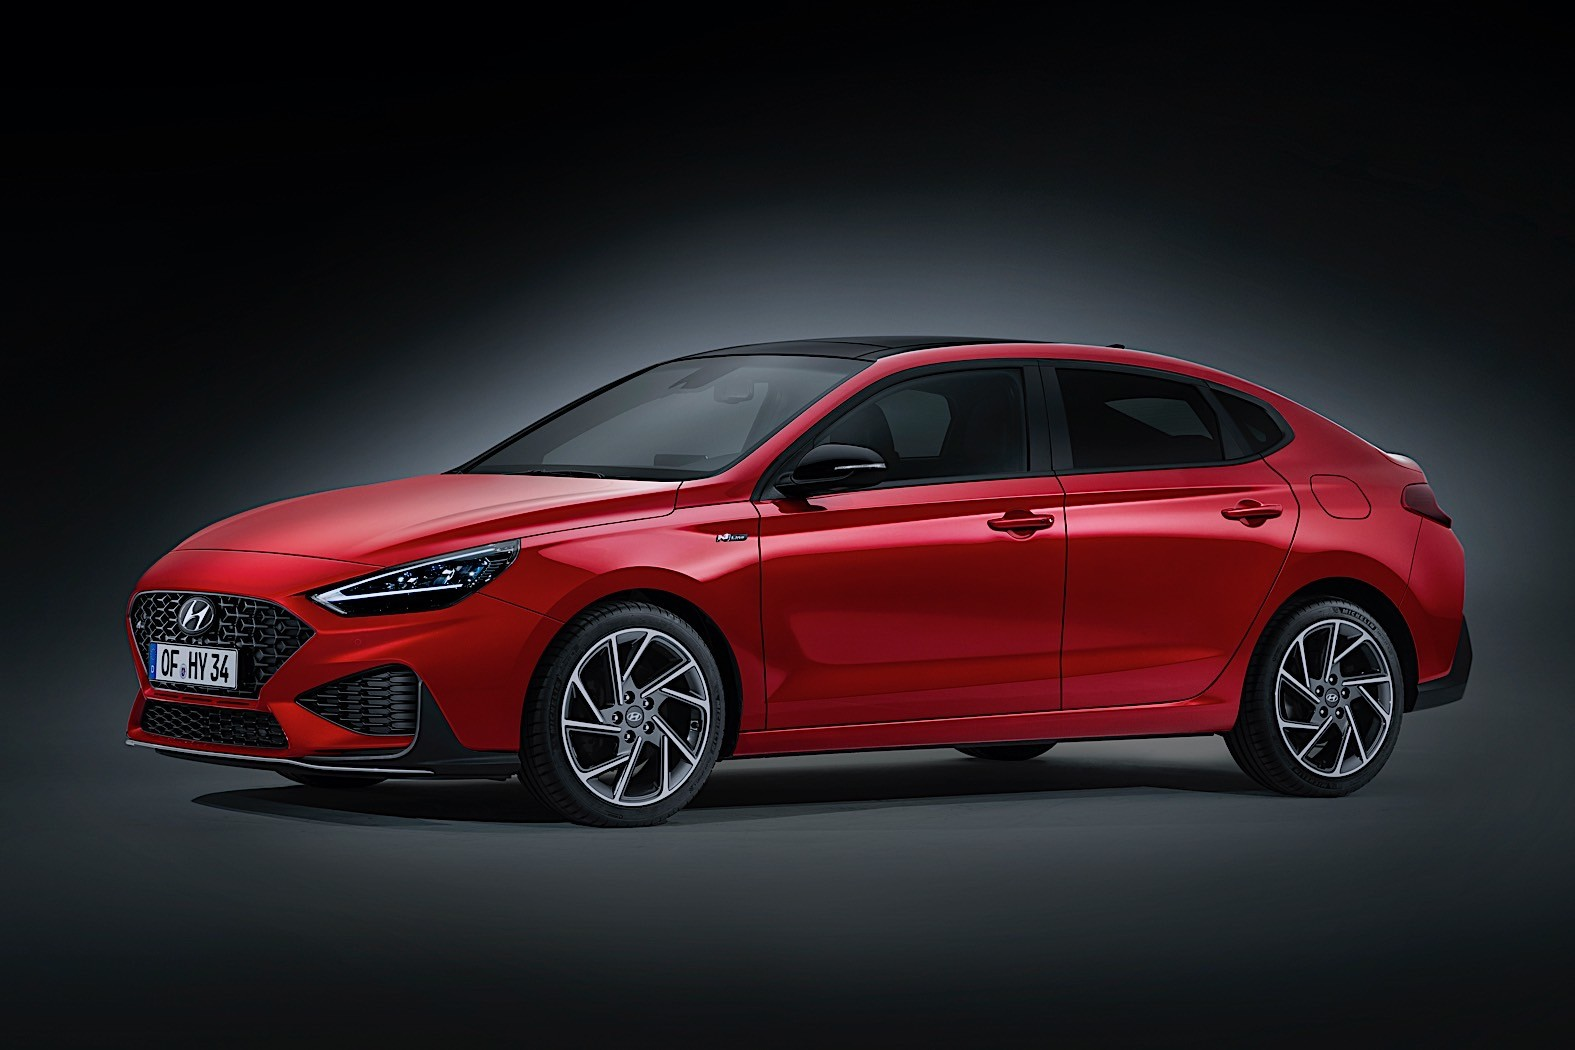 2021 Hyundai i30 Review - autoevolution